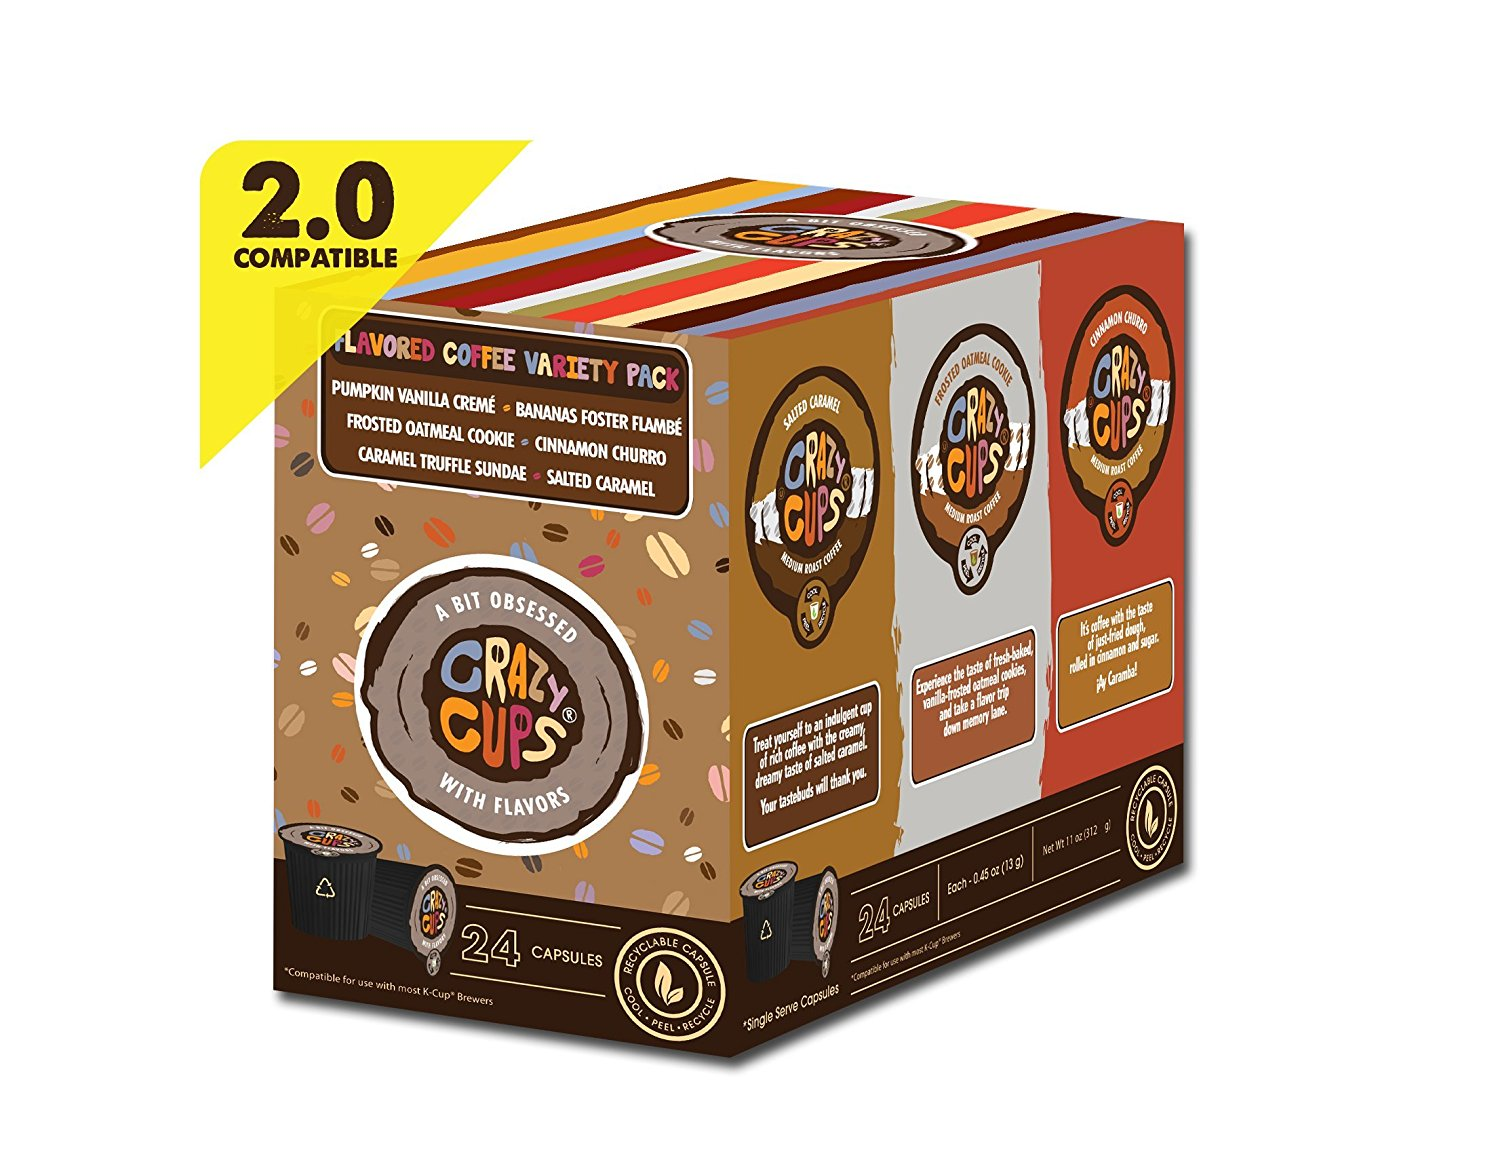 Crazy-Cups-Chocolate-Lovers-039-Flavored-Coffee-Variety-Pack-Sampler-24-ct thumbnail 10